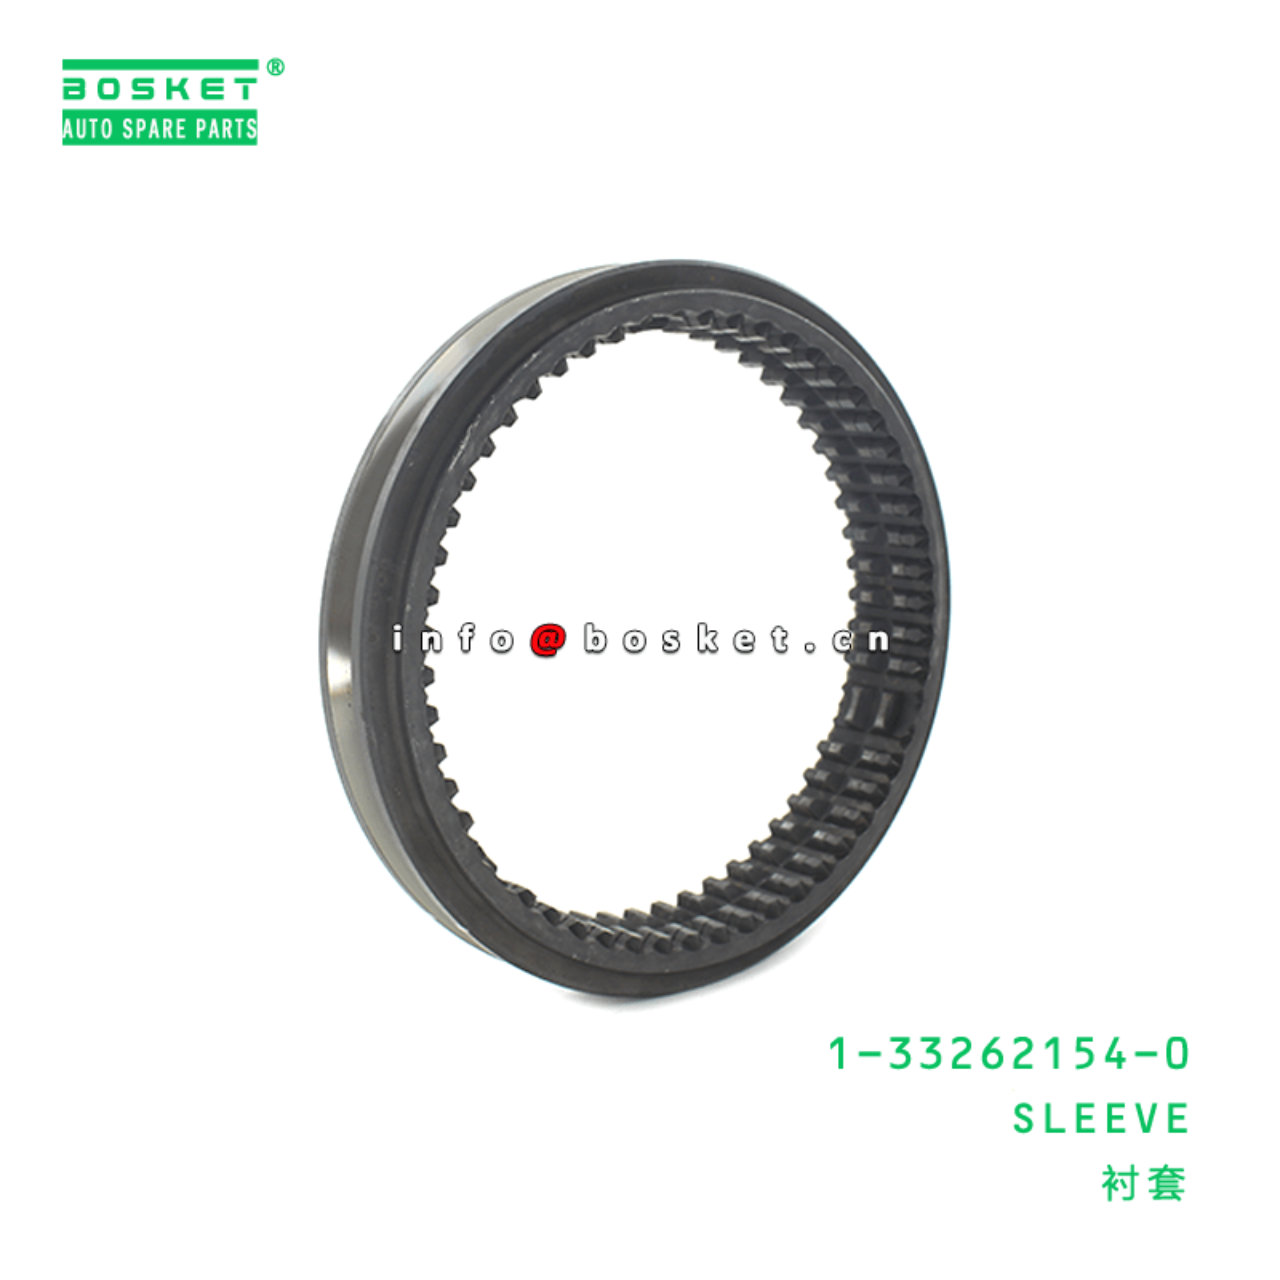 1-33262154-0 Sleeve 1332621540 Suitable for ISUZU LV